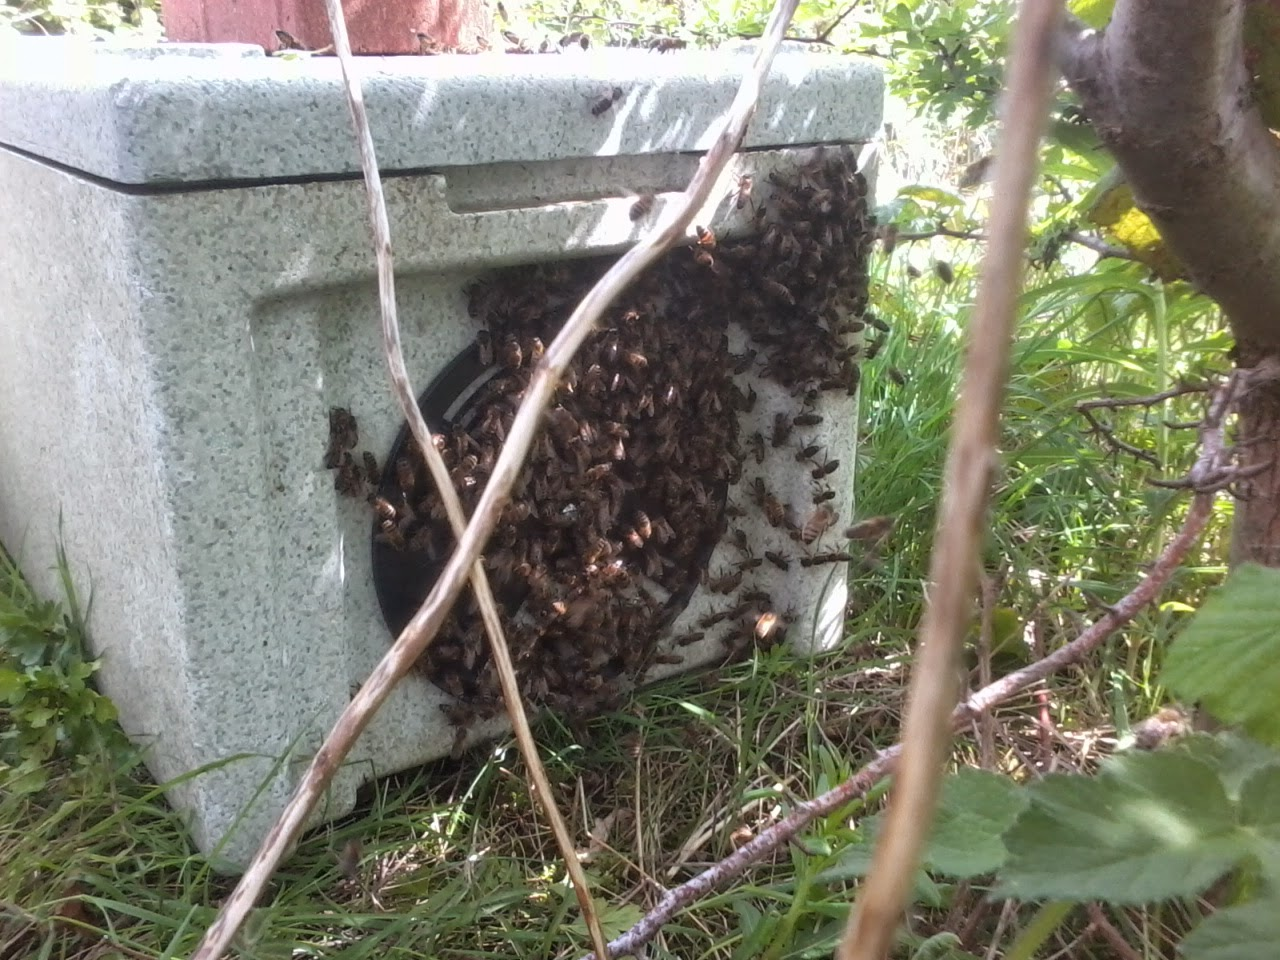 Nuc with bees on outside 'fanning' to let other bees know where the queen is.